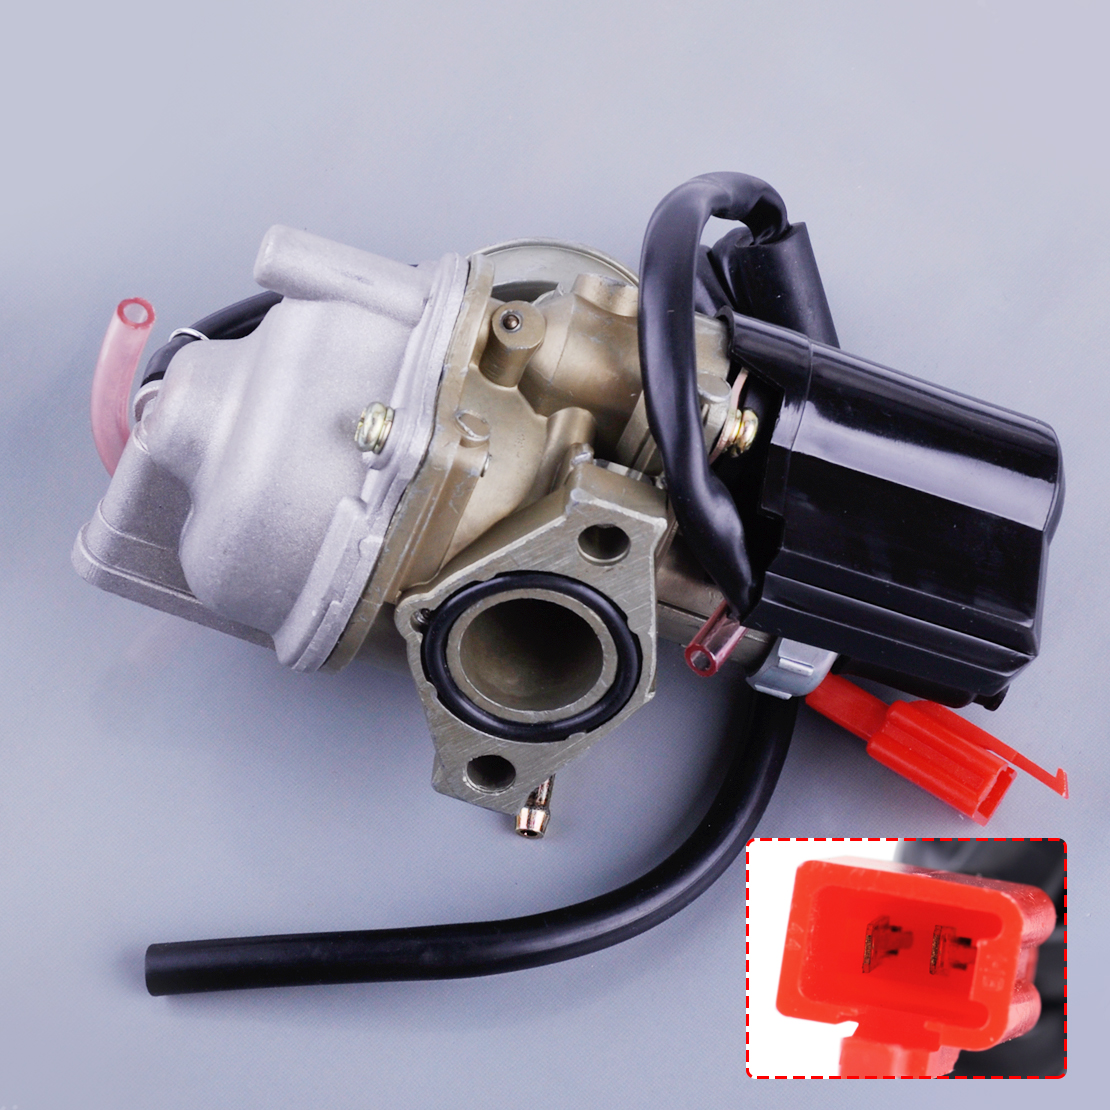 US $25 19 30% OFF|beler 19mm Carburetor Carb Fit for Honda 2 Stroke 50cc  Dio 50 ZX34 35 SYM Kymco Scooter-in Carburetors from Automobiles &